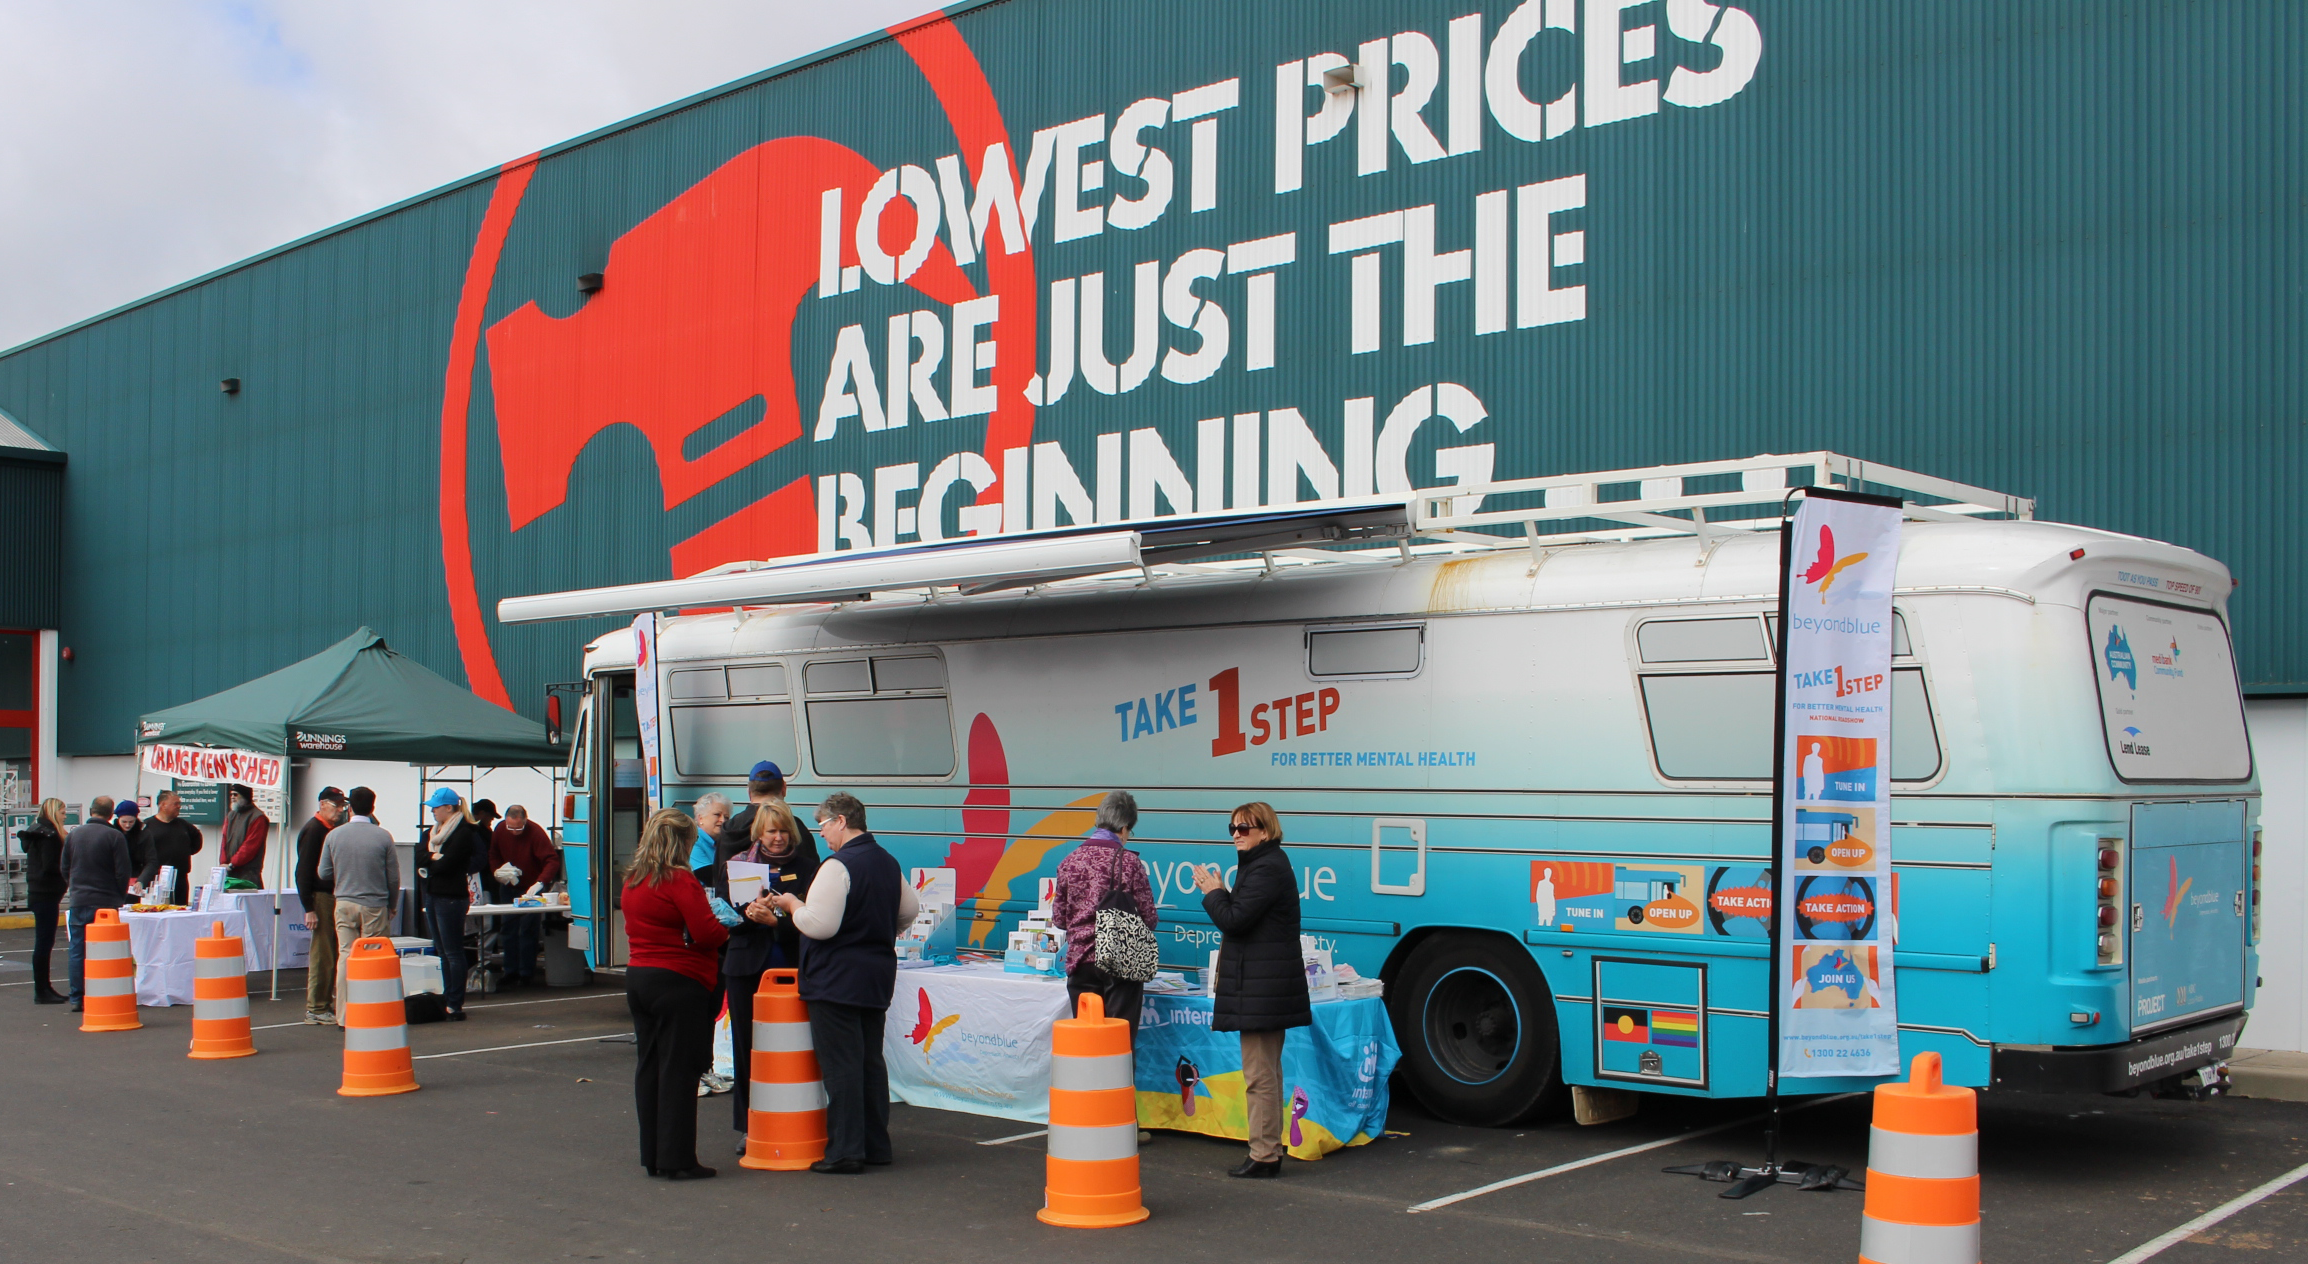 Many people dropped by the bus in Orange to collect some free information about mental health.